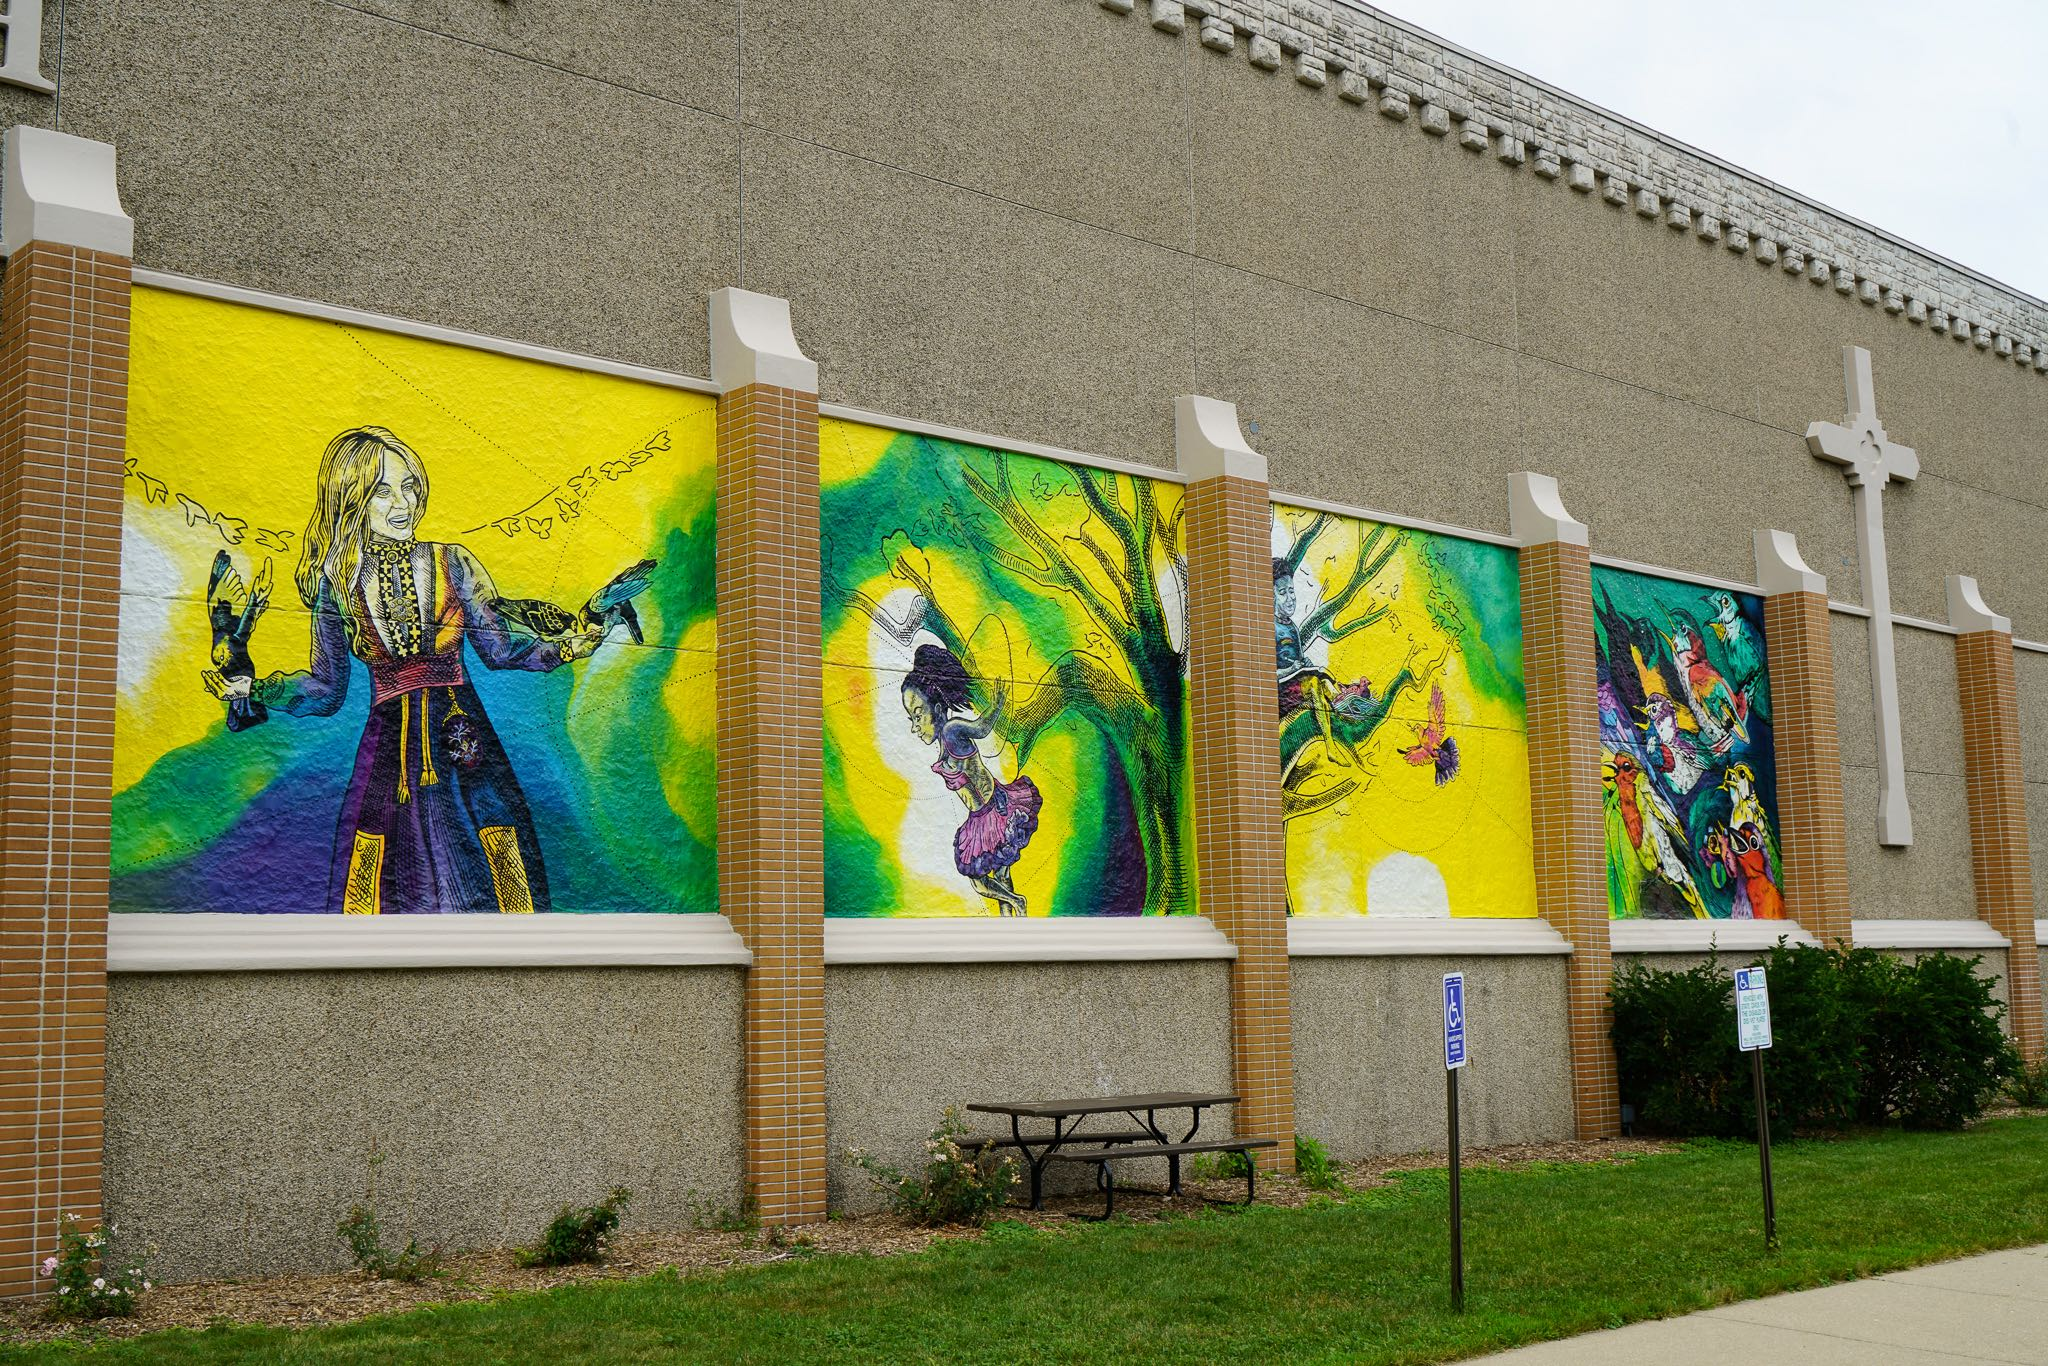 Giant Mural at Lutheran Church with Birds